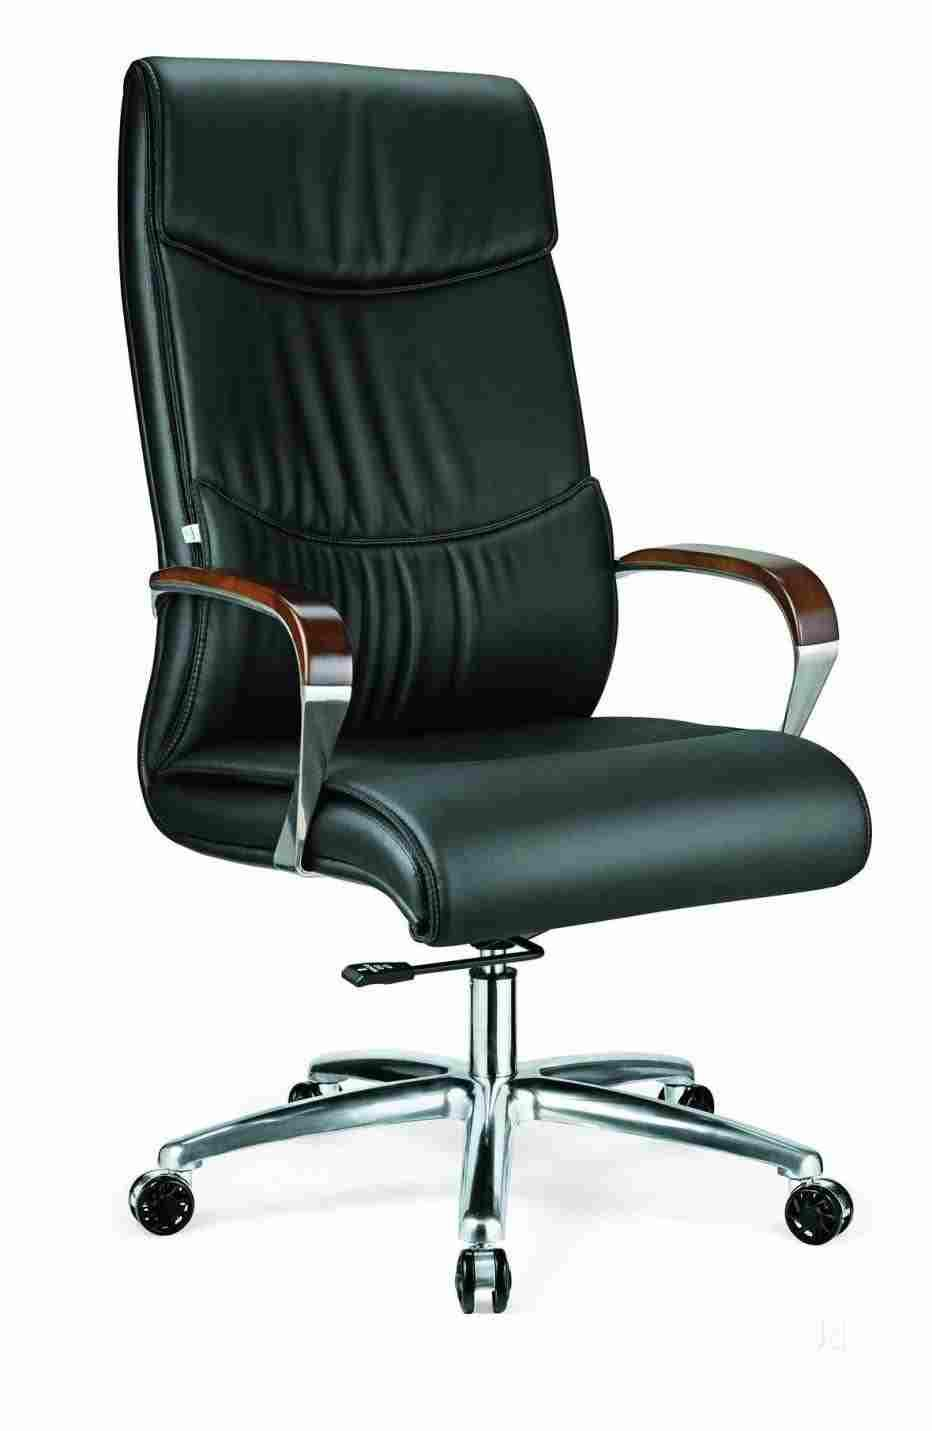 Chair Price Nilkamal Chairs Price In Mumbai Chair Riset Chair Price Chair